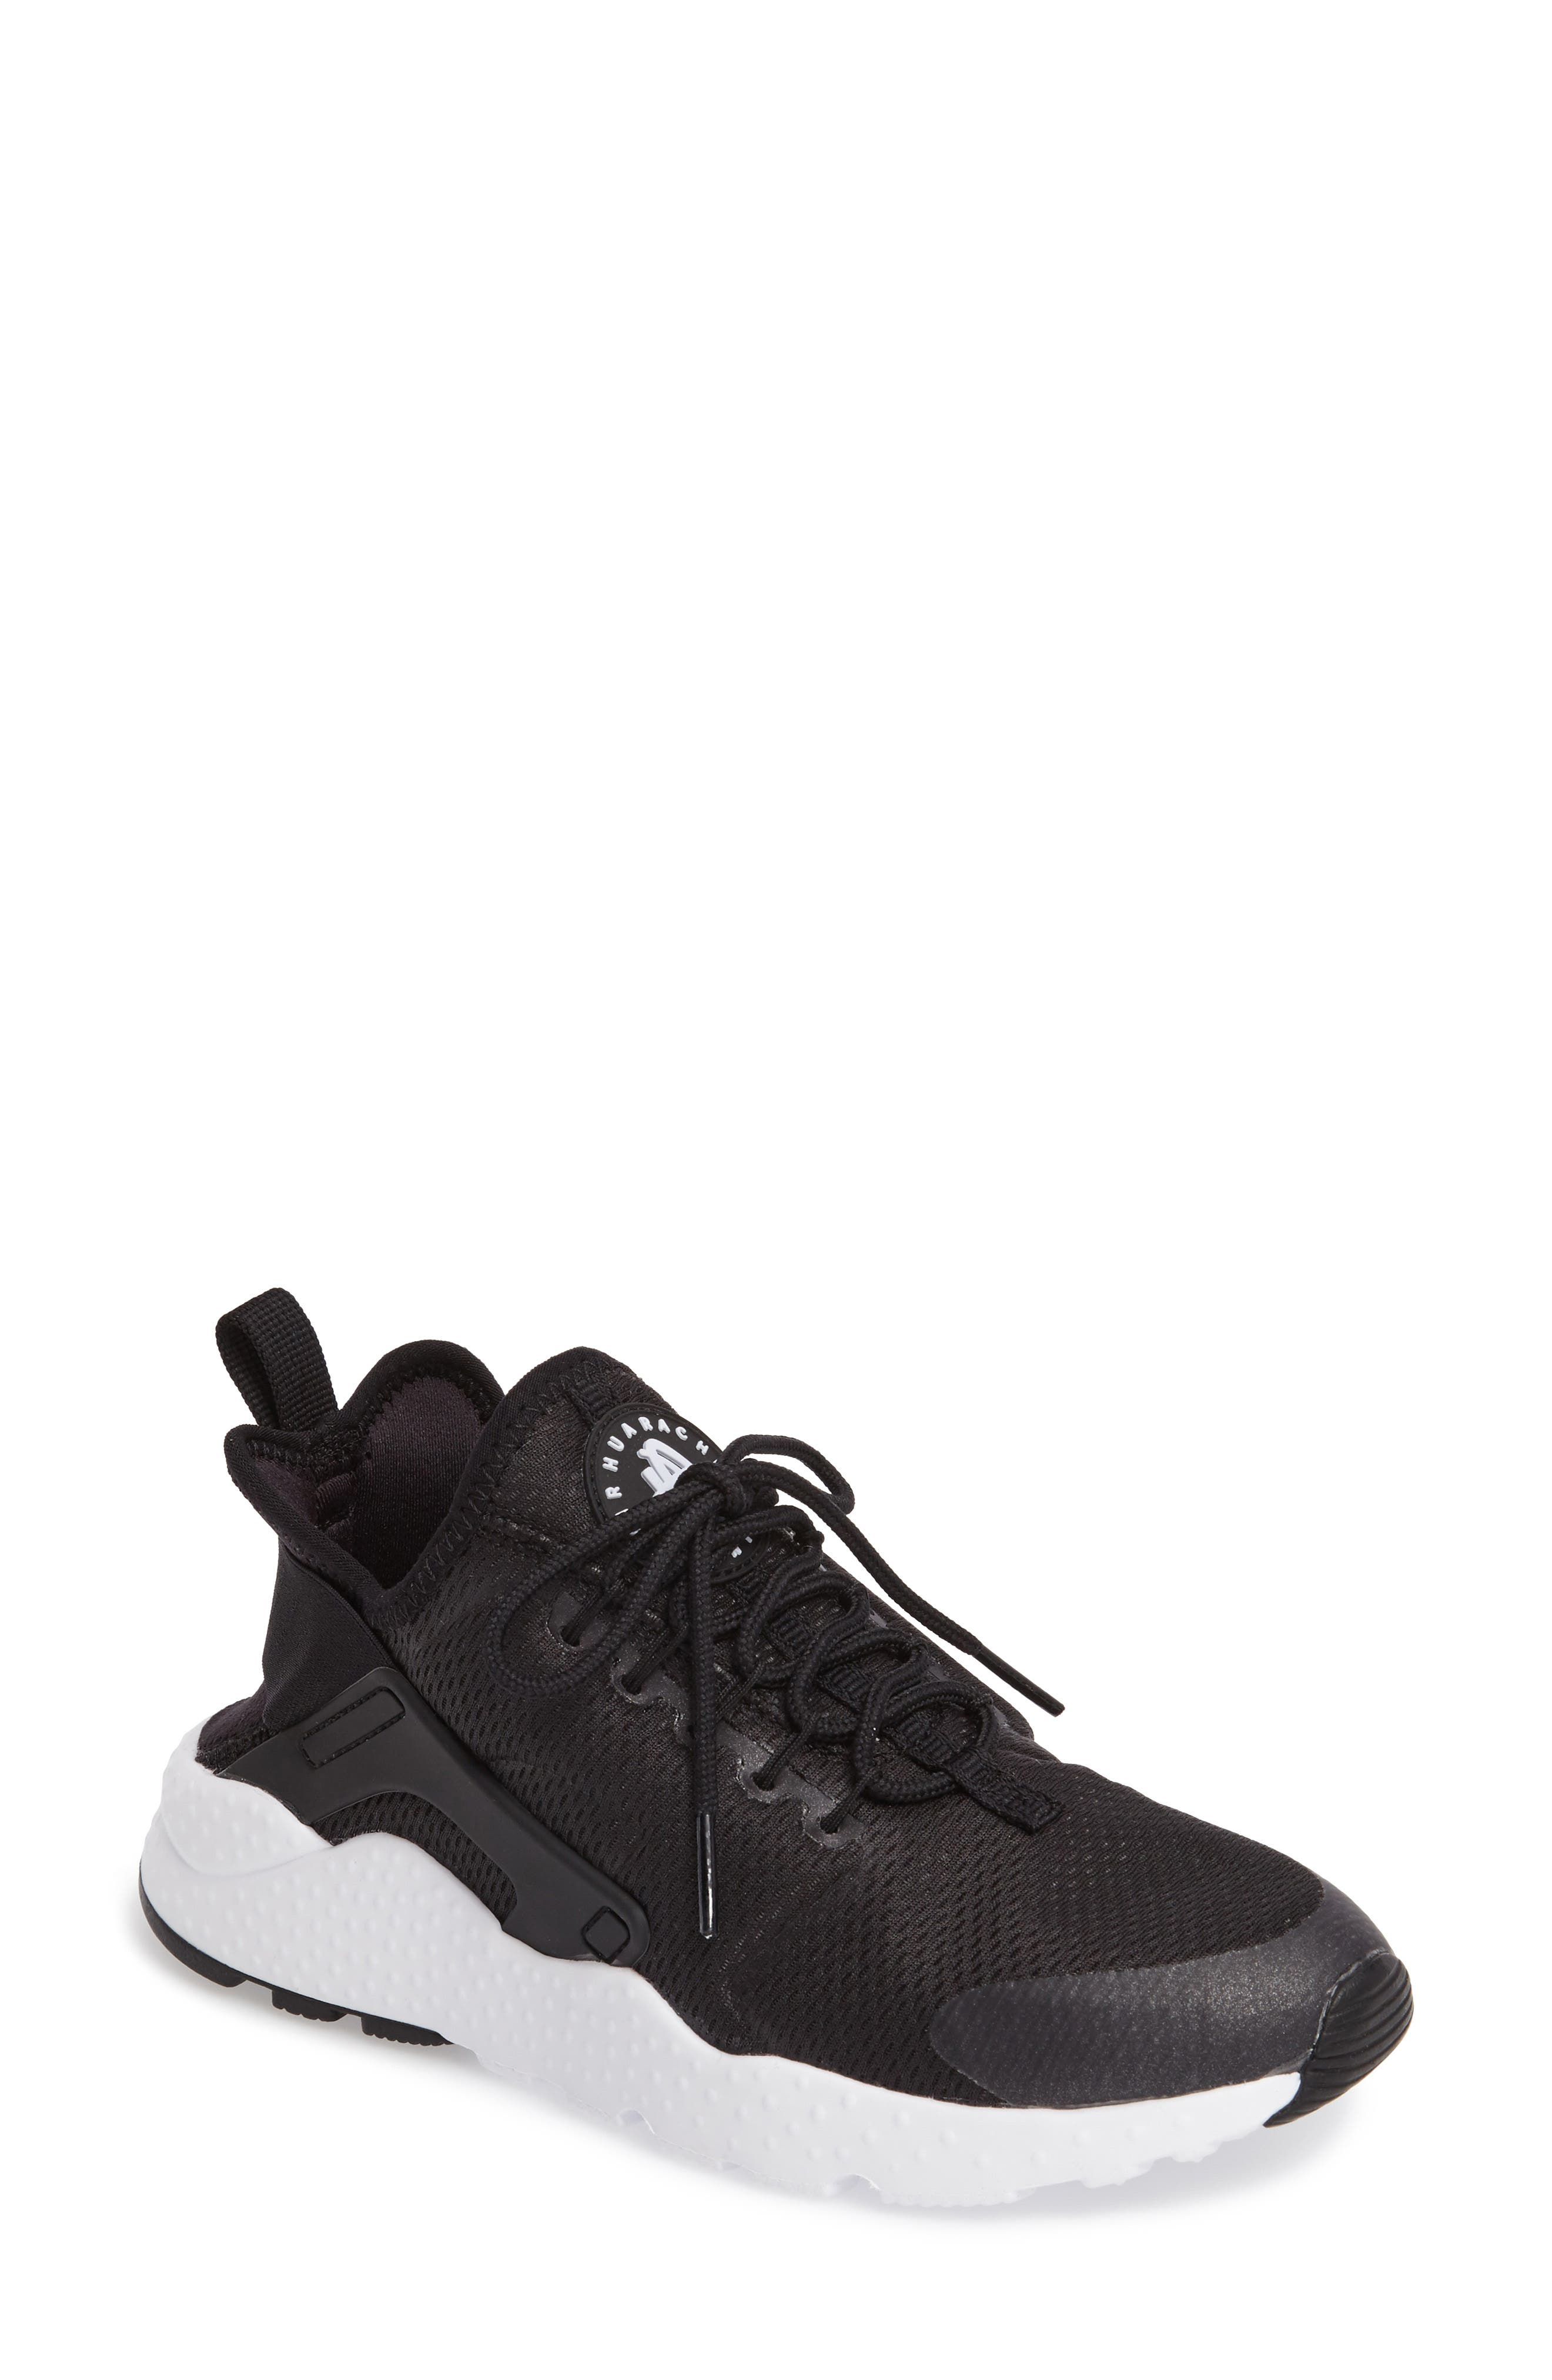 Nike Air Huarache Sneaker (Women)